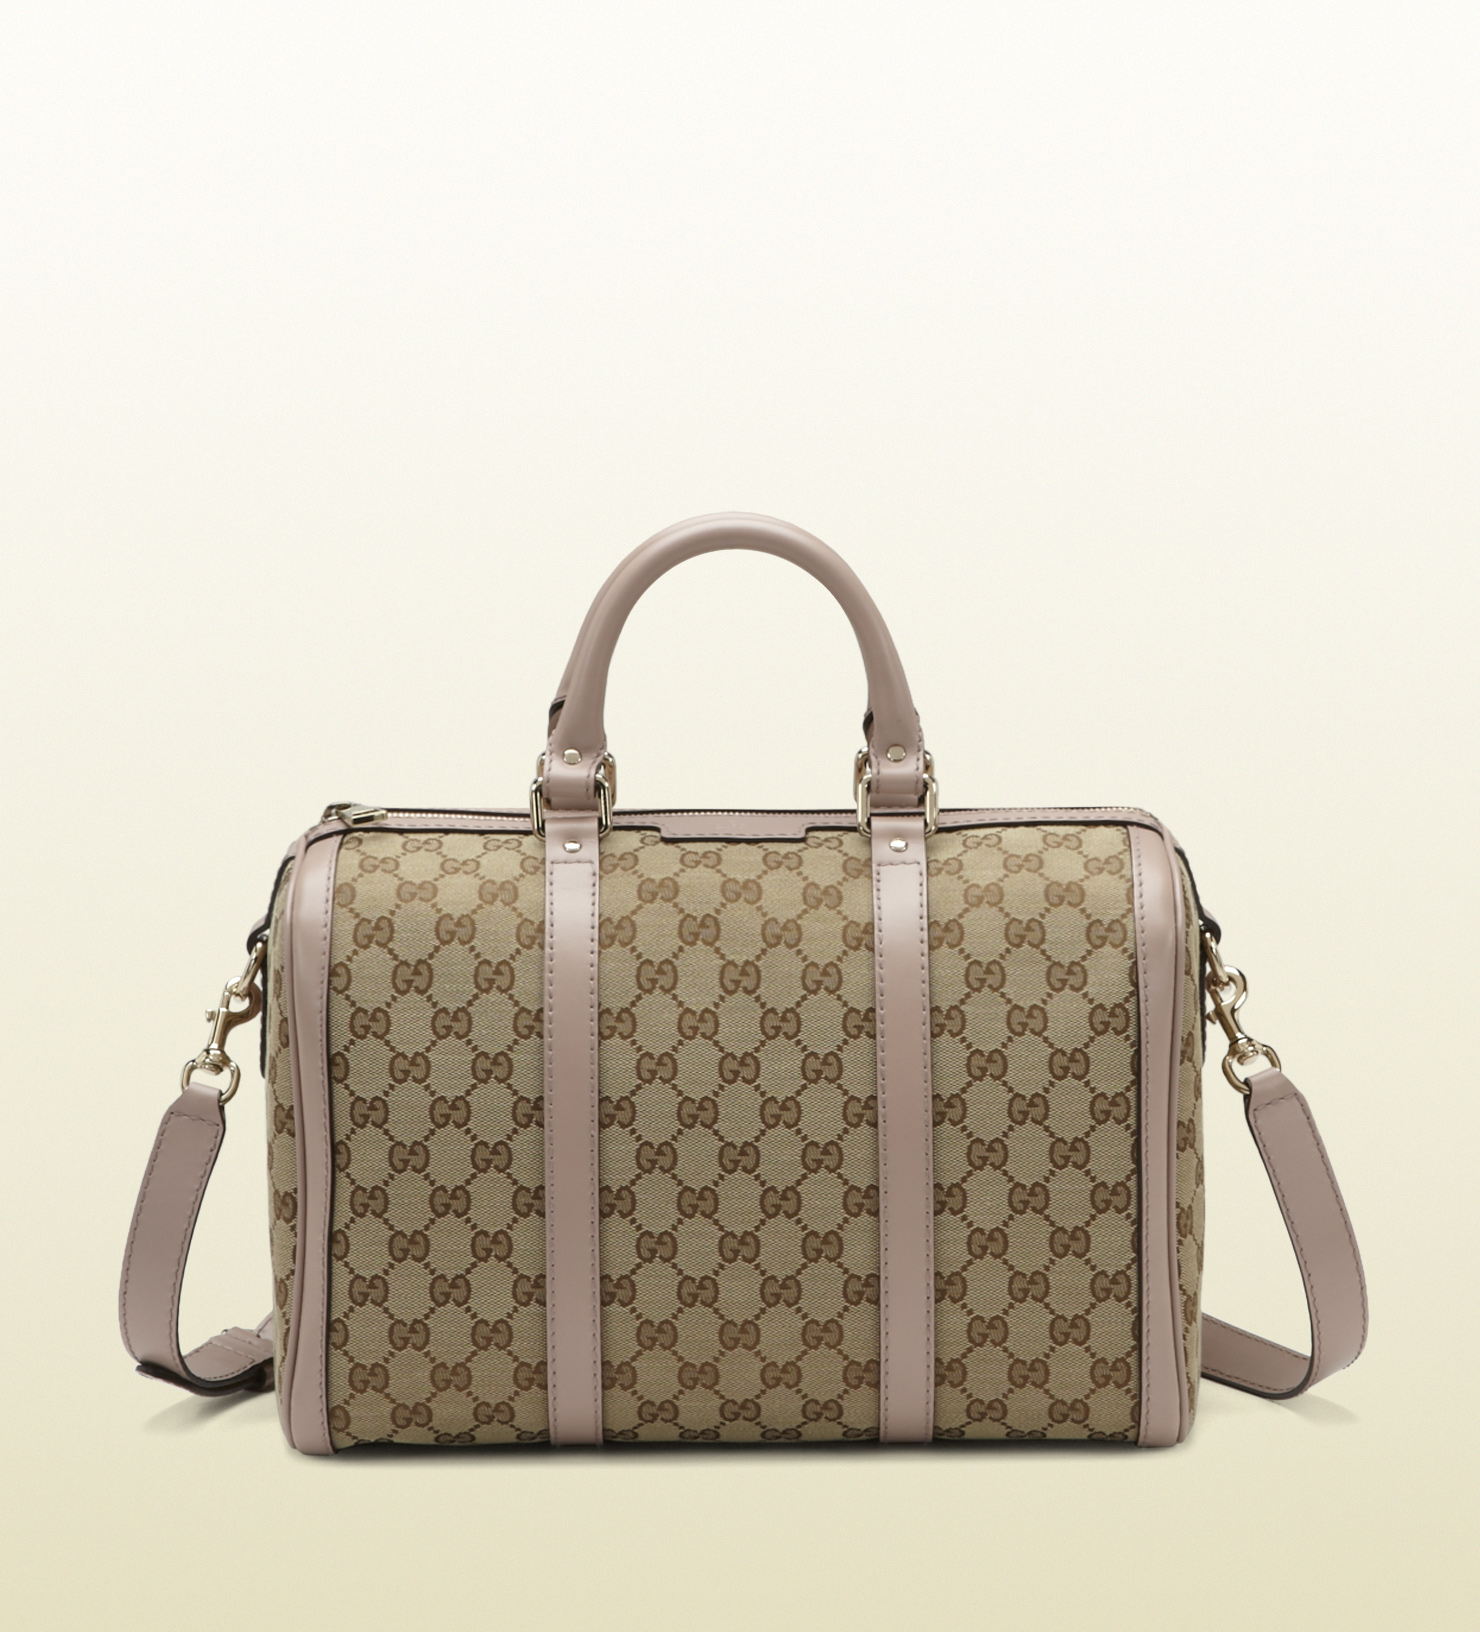 4f20fd6b34 Gucci Vintage Web Original Gg Canvas Boston Bag in Brown - Lyst